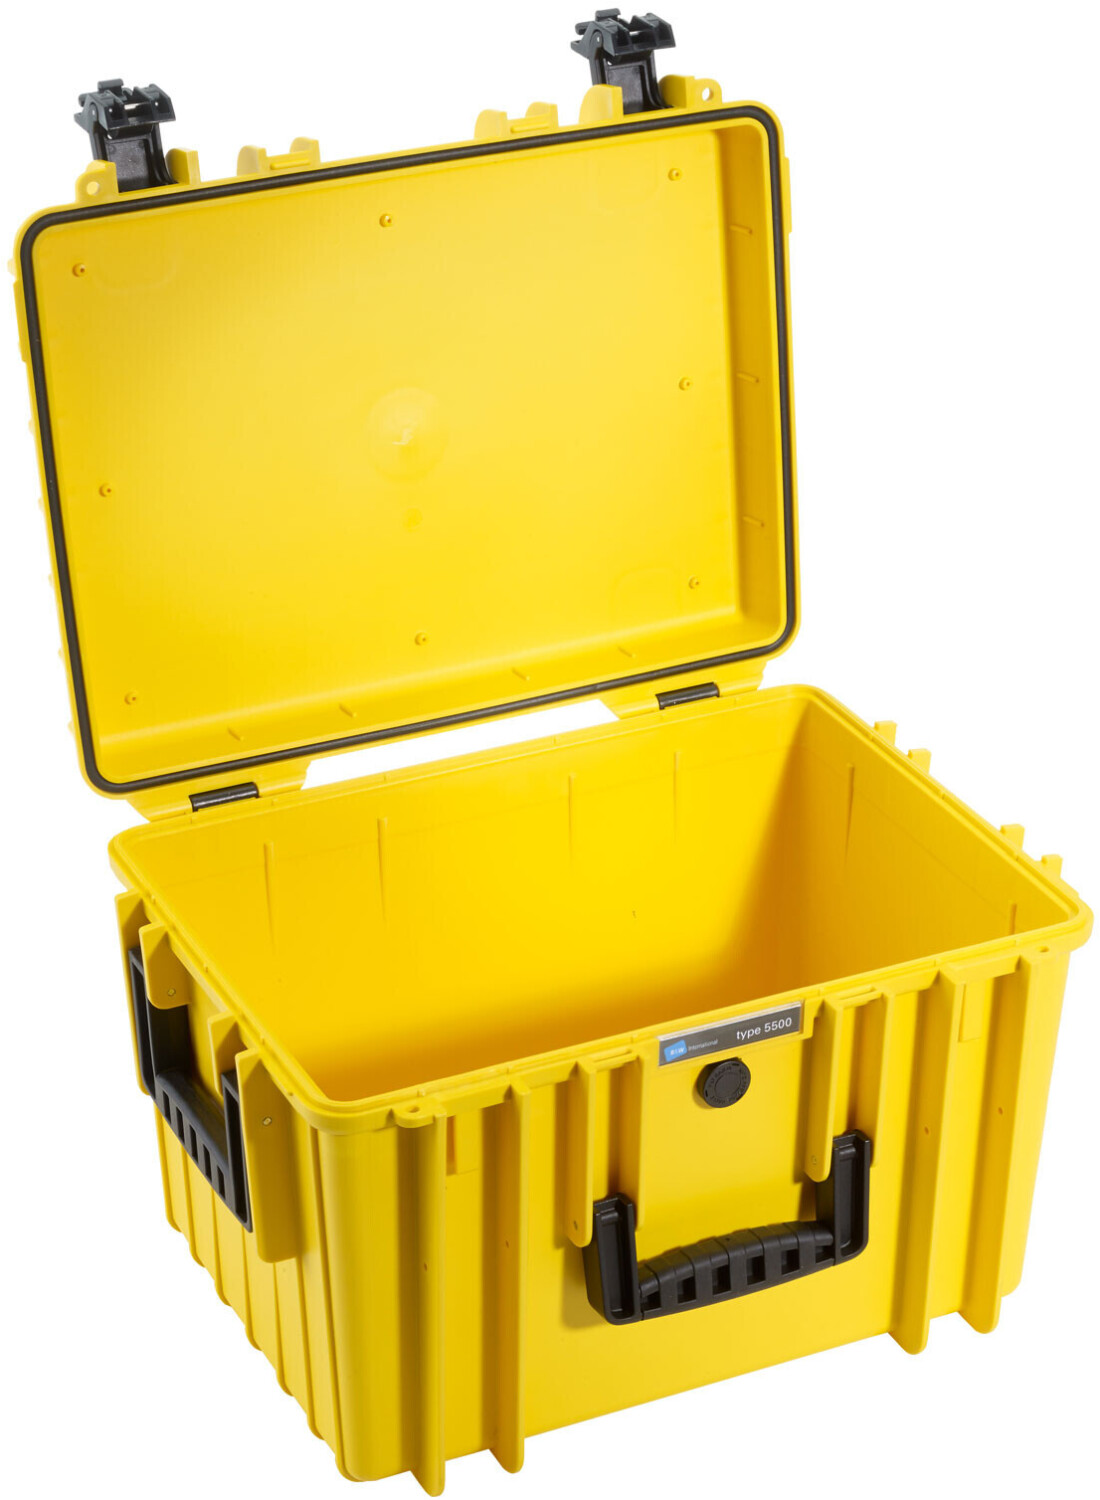 Image of B&W Outdoor Case Typ 5500